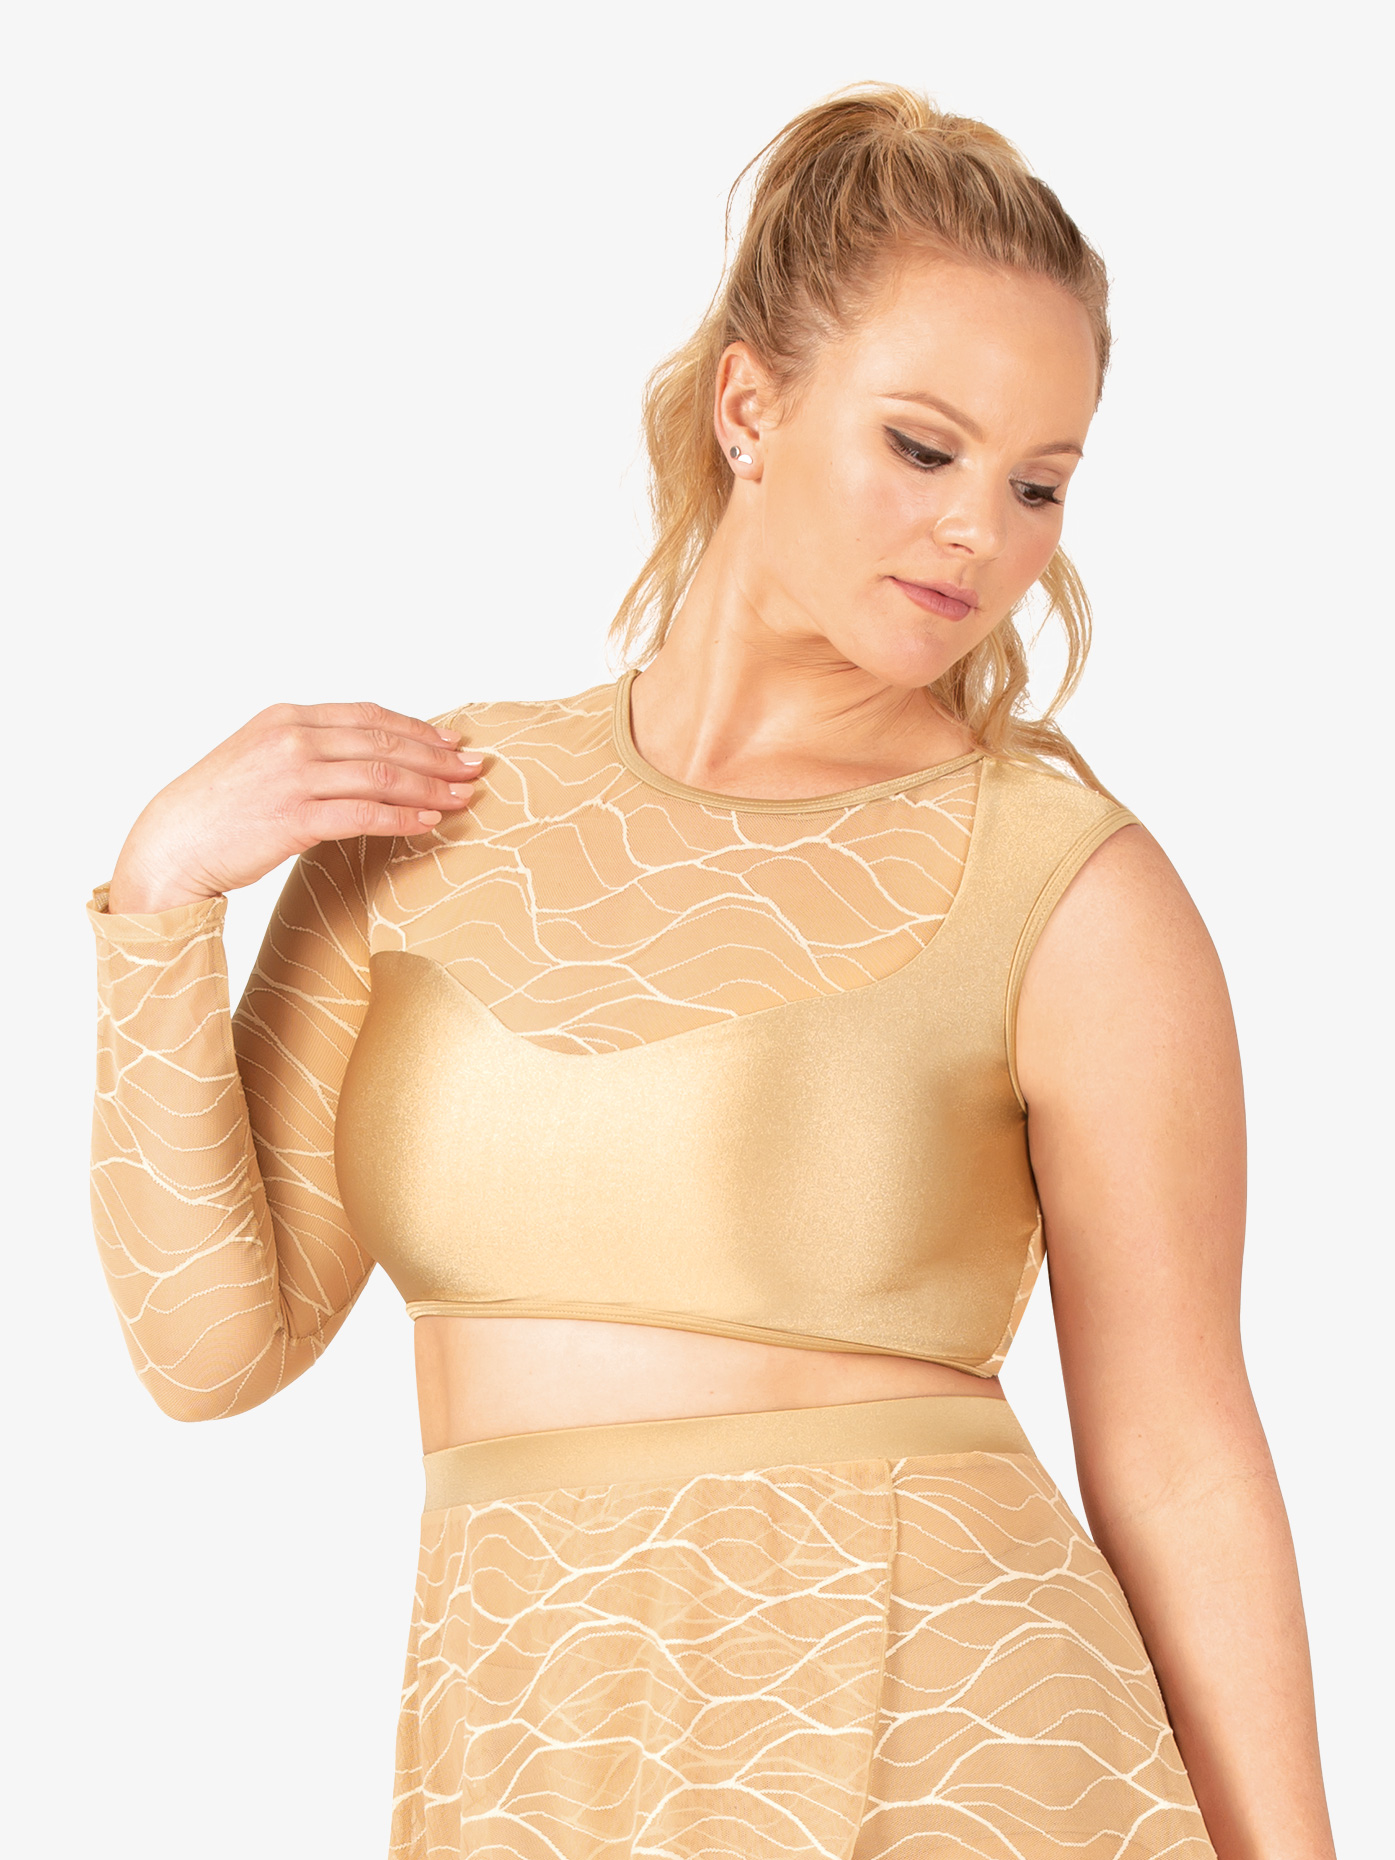 Double Platinum Womens Plus Size Swirl Mesh Asymmetrical Dance Crop Top N7628P